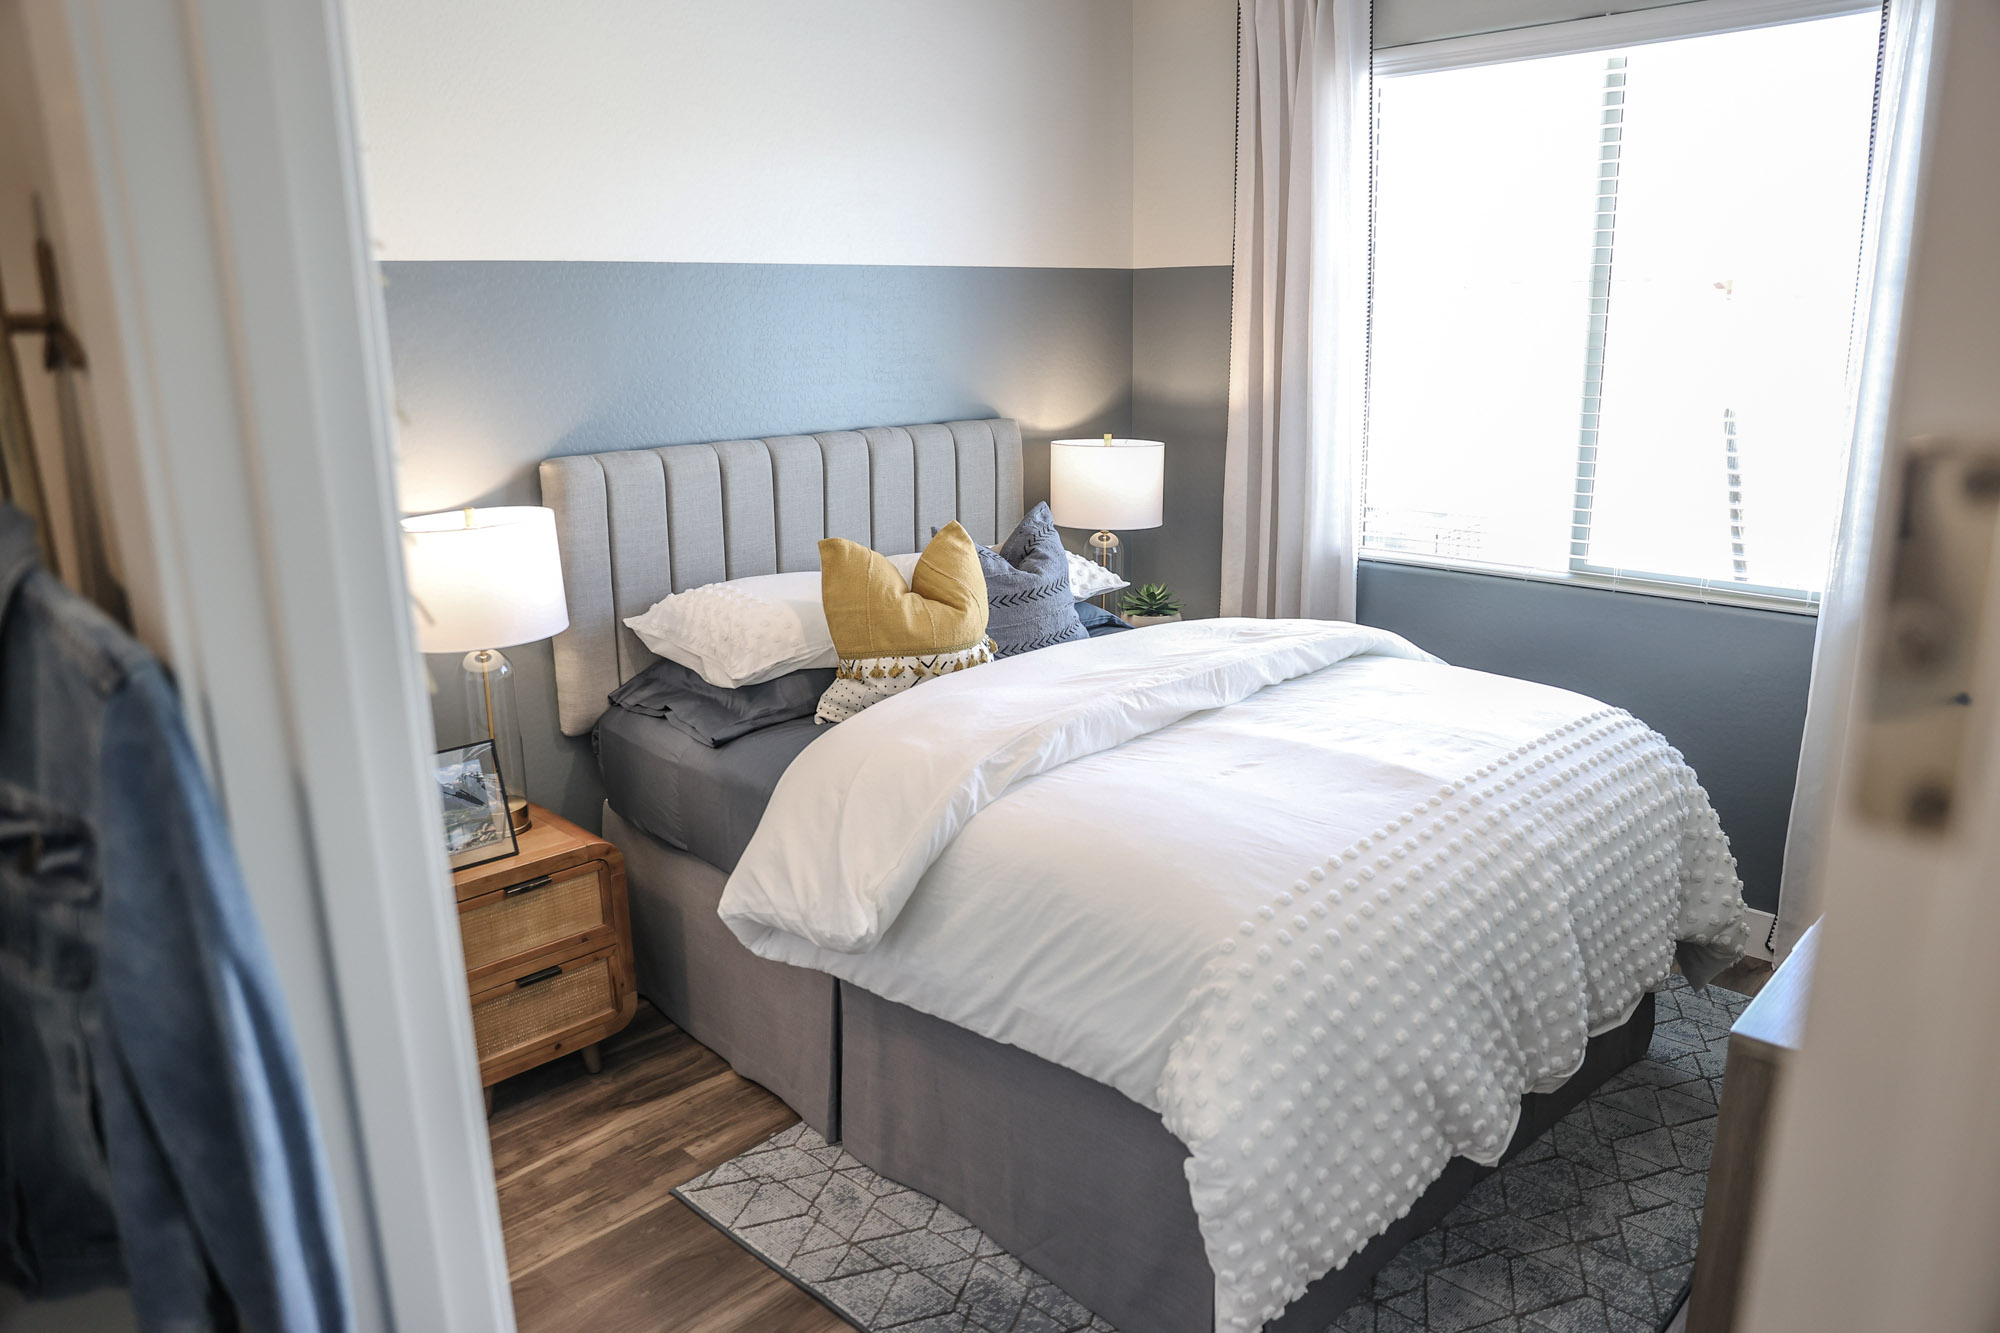 Spacious Bedroom at Olive Marketplace Apartments in Glendale, AZ